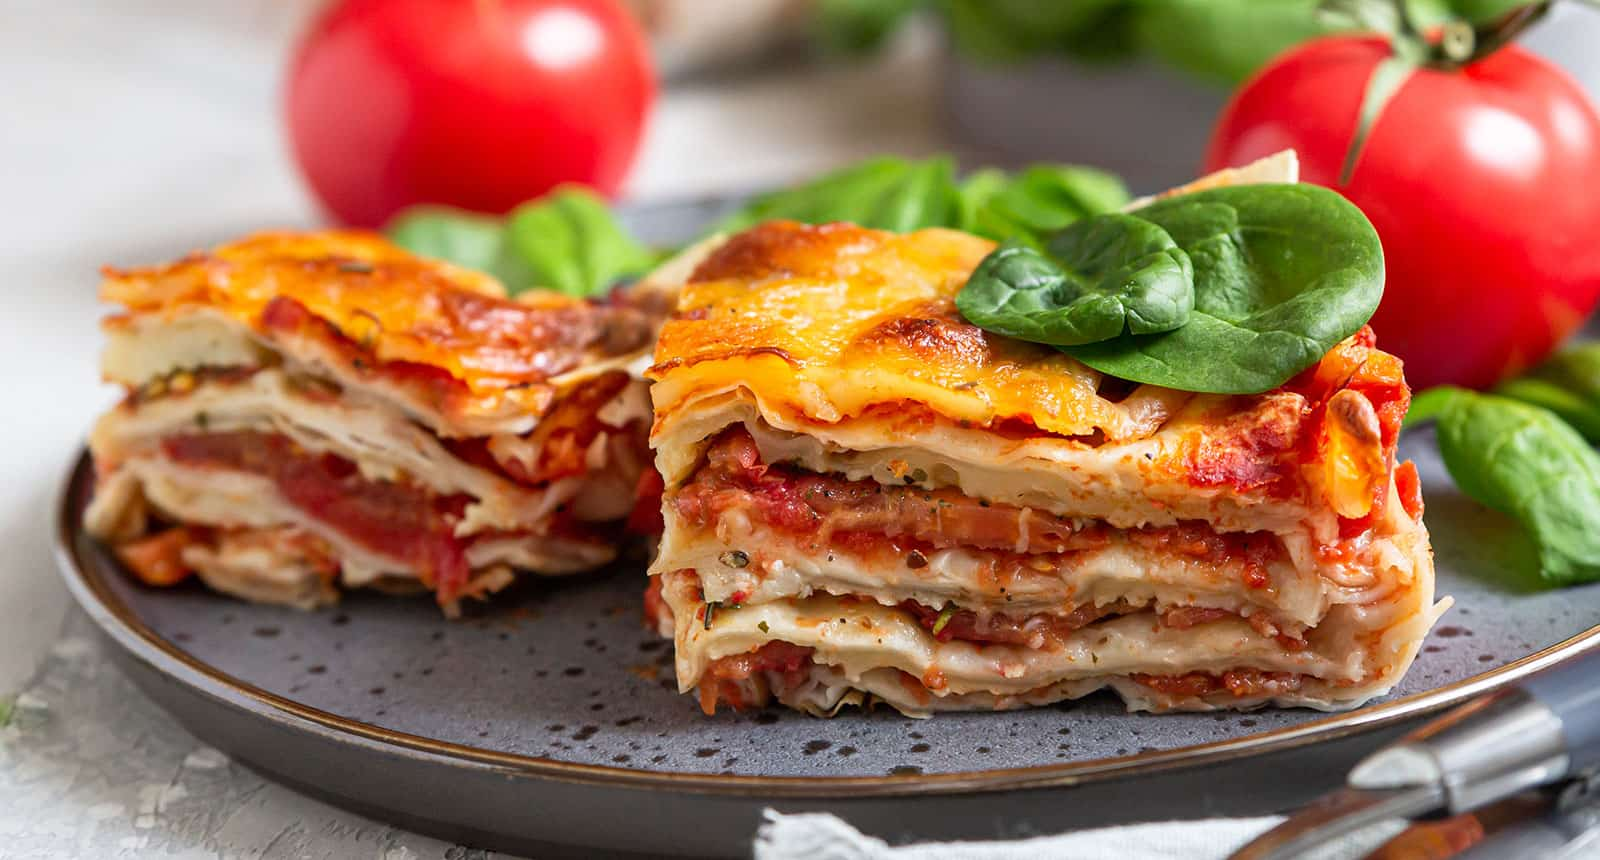 What To Serve With Lasagna: 33 Delicious Side Dishes That Isn't Just Salads